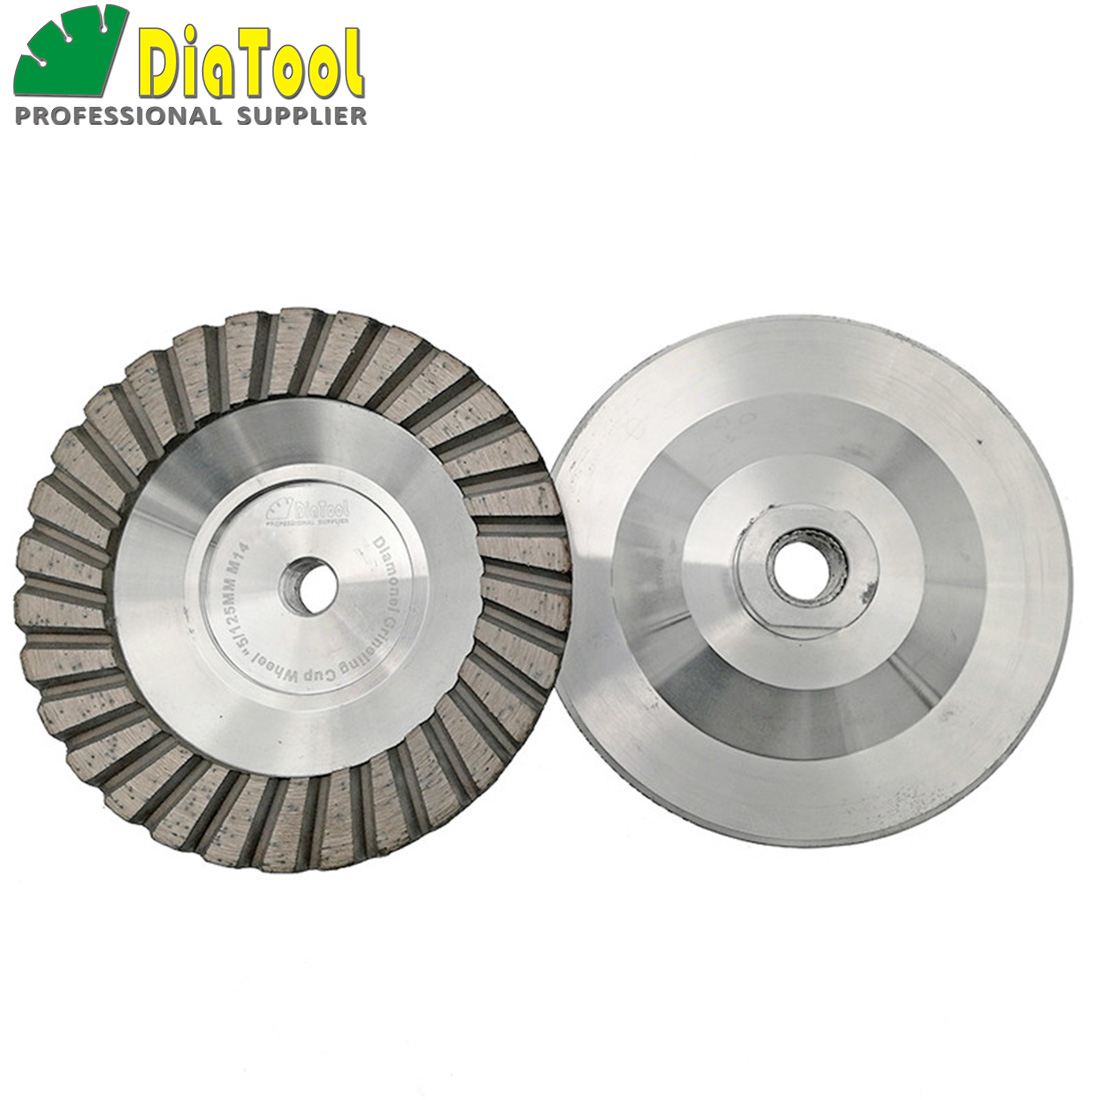 DIATOOL 2PK Dia 125mm/5inch Aluminum Based Diamond Grinding Cup Wheel M14 thread Grit #30 Grinding Wheel For Granite Concrete [m14 thread] 5 ncctec diamond aluminum matrix sintered grinding disc 125mm stone turbo grinding cup wheel free shipping